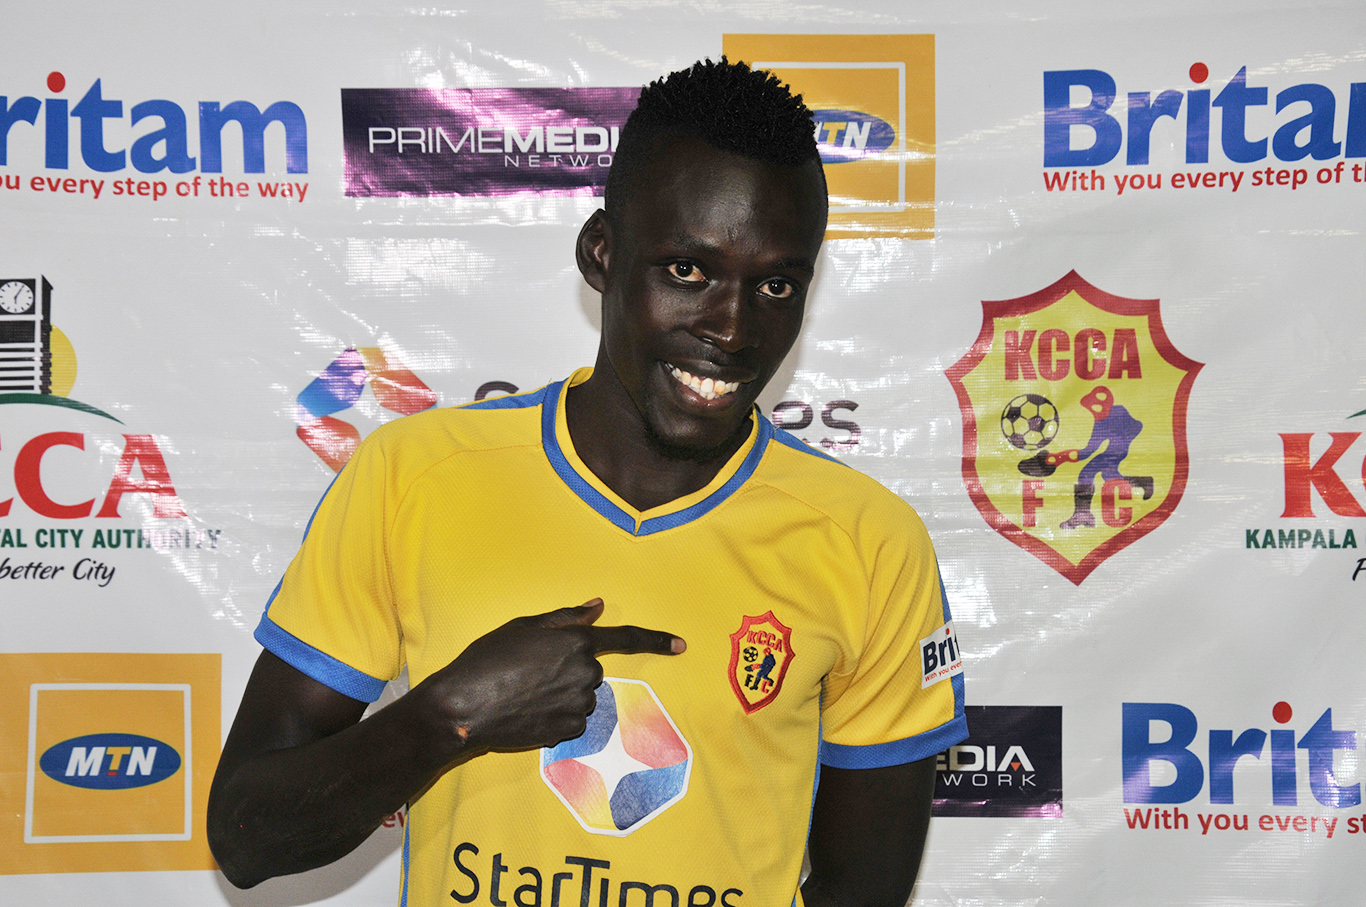 Esenu joined KCCA at the start of this season (file Photo)